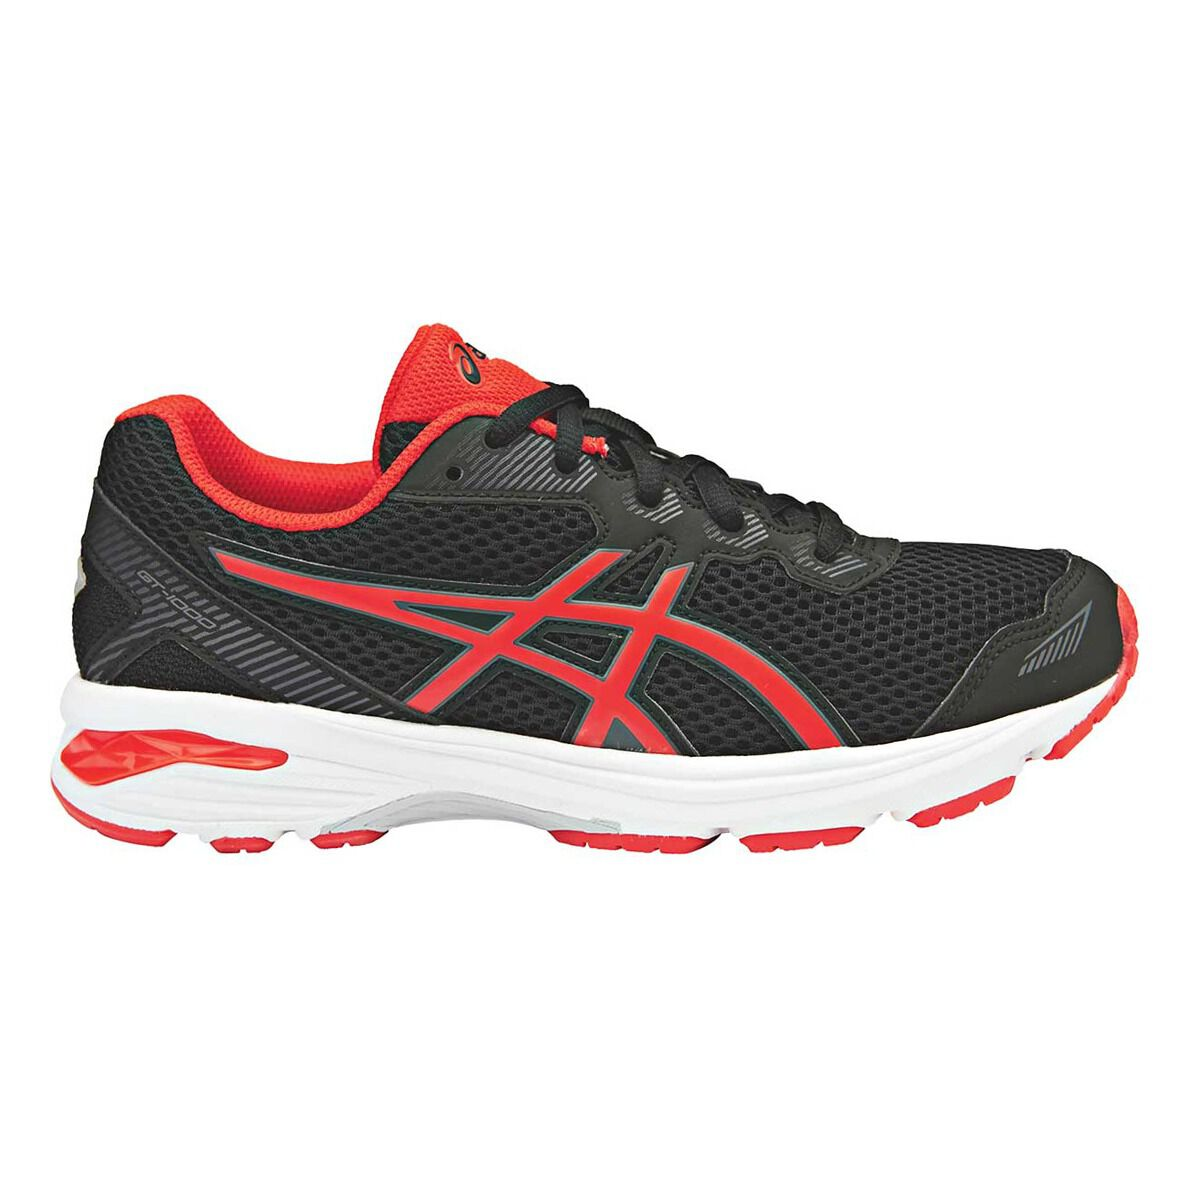 1000 Us Shoes Asics Sport Black Boys Gt Running Red 5 3Rebel rhQdCts